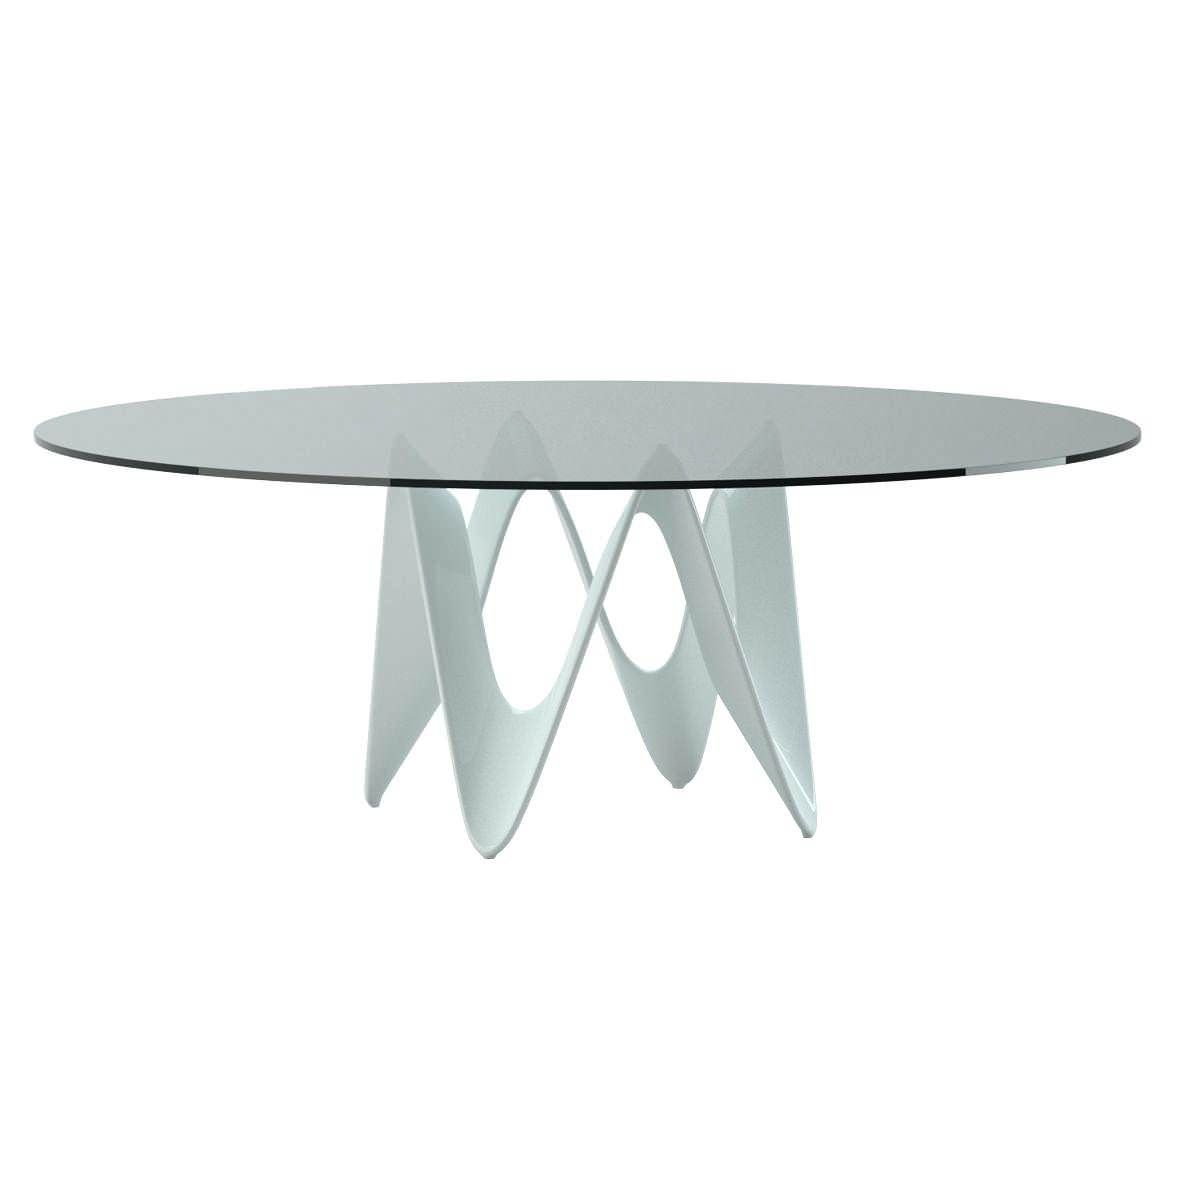 The Meaning Of White Round Coffee Table Round Coffee Table White Round Coffee Table Coffee Table Pictures [ 1200 x 1200 Pixel ]